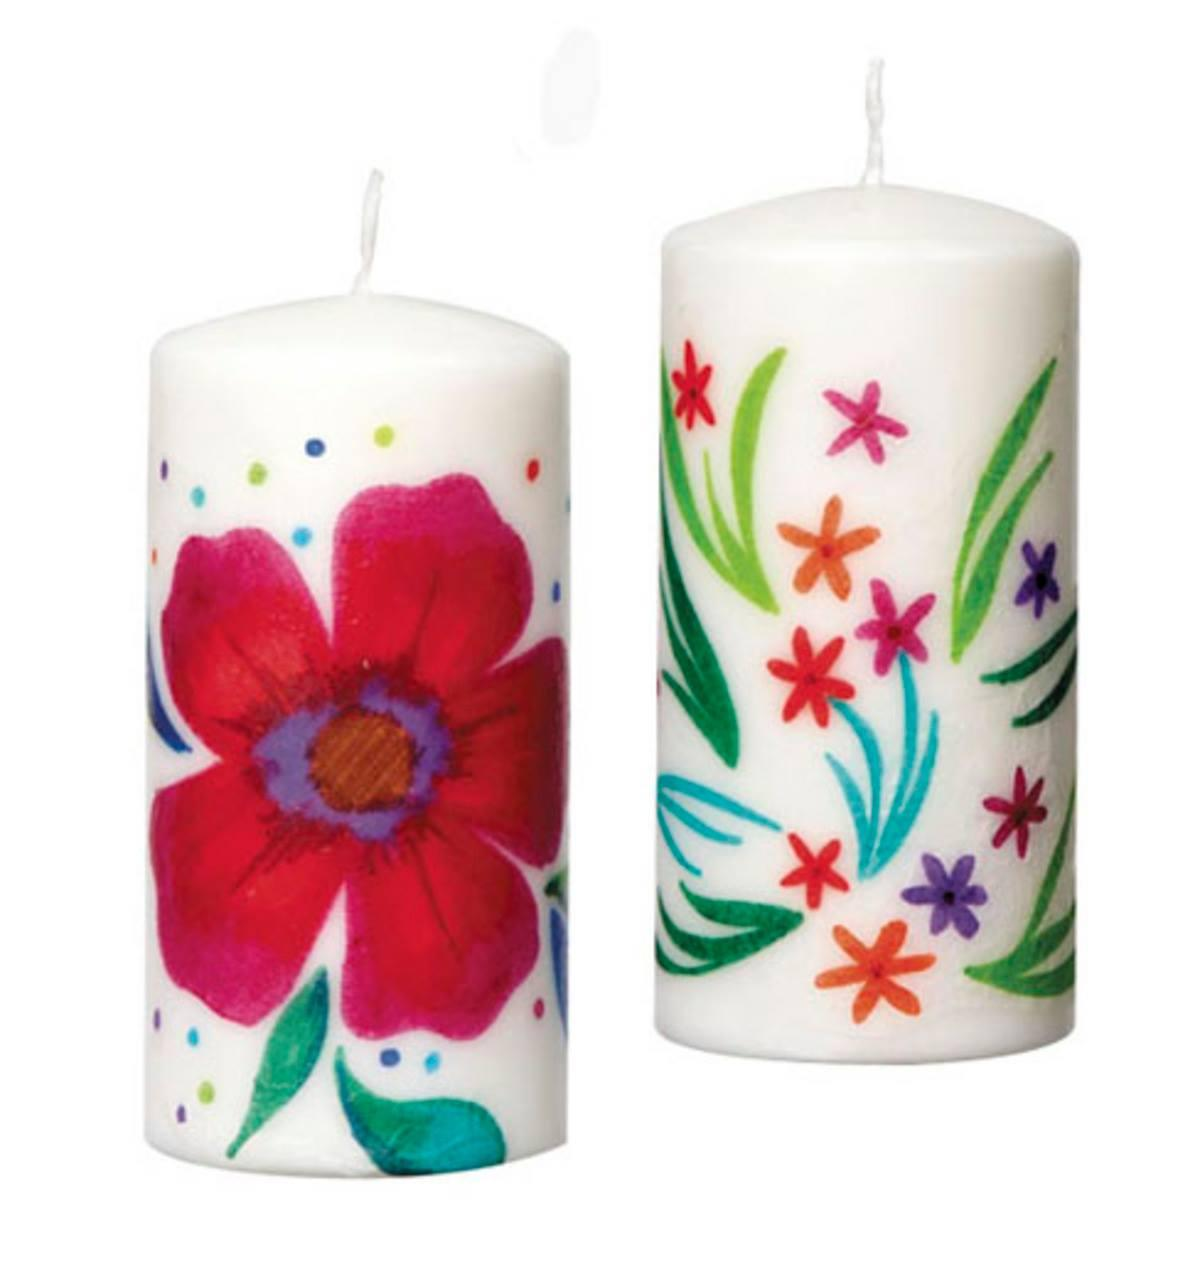 Designer Candles Order Designer Candles in Pune For Gifting. Customized Candles for Gifting order in Pune